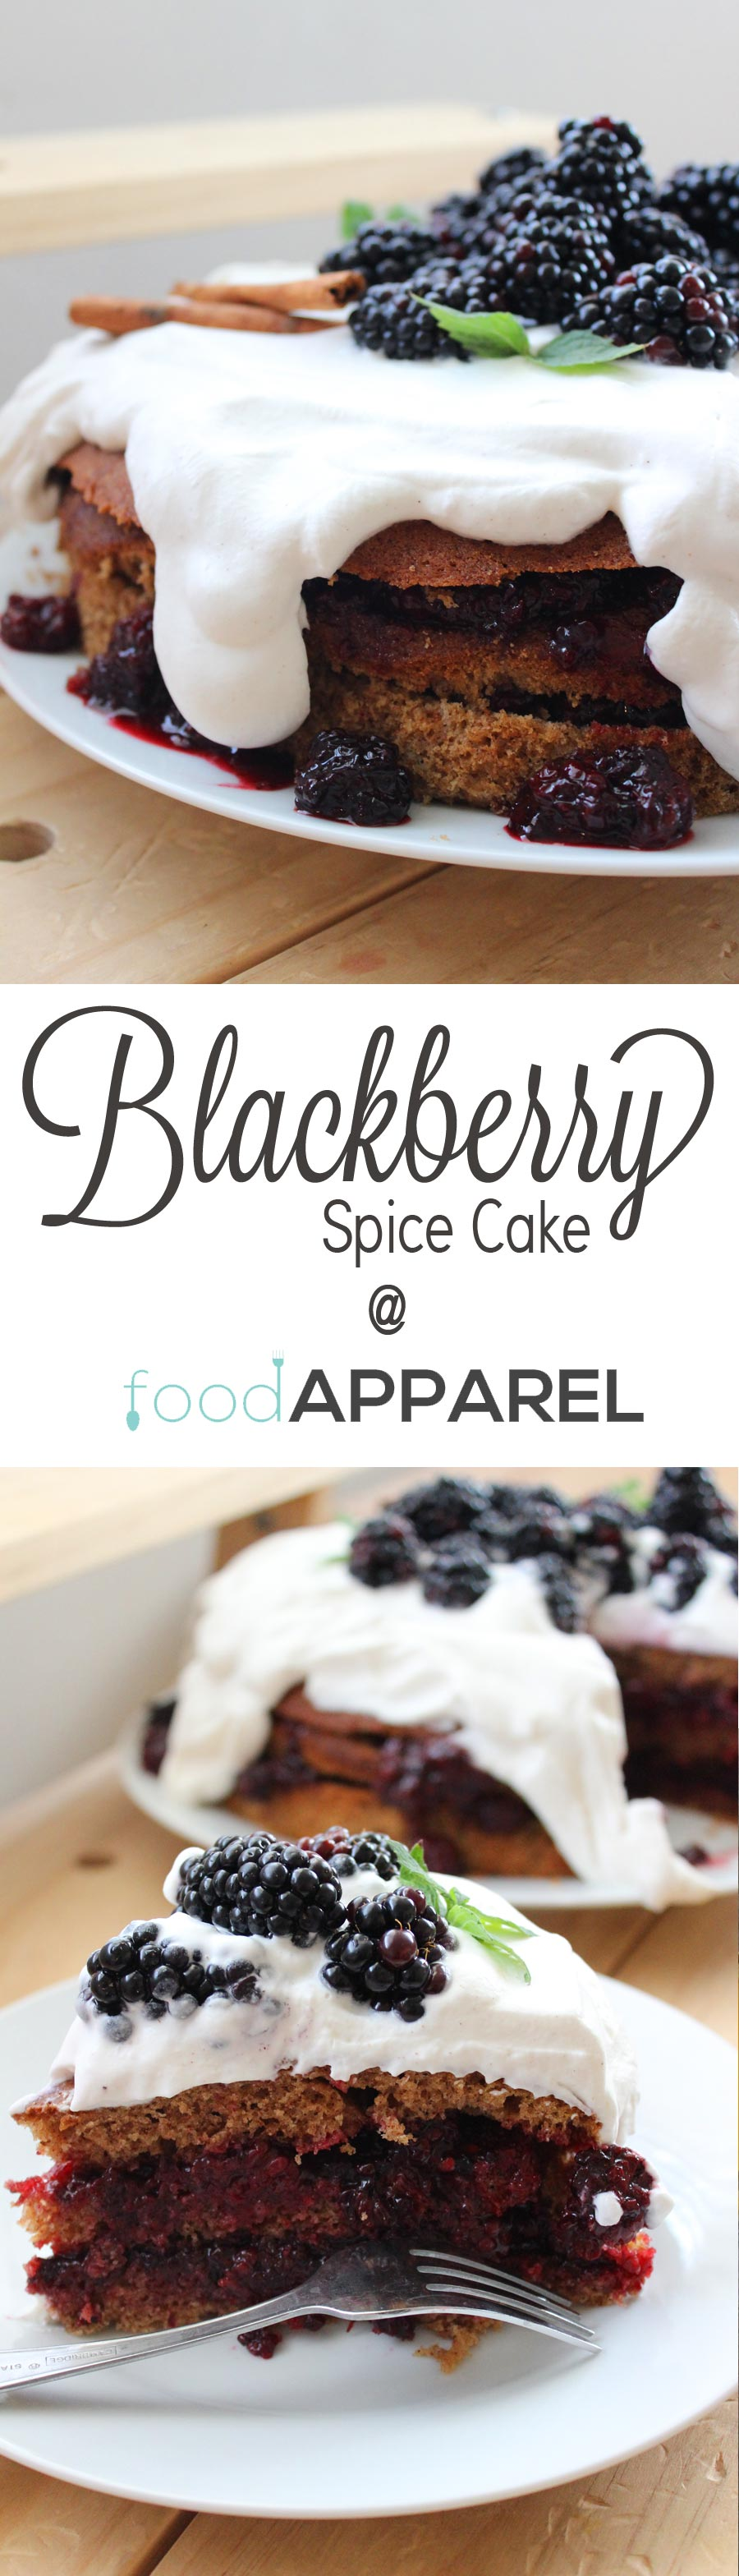 Spice Cake with Blackberry Filling and Cinnamon Whipped Cream Recipe ...